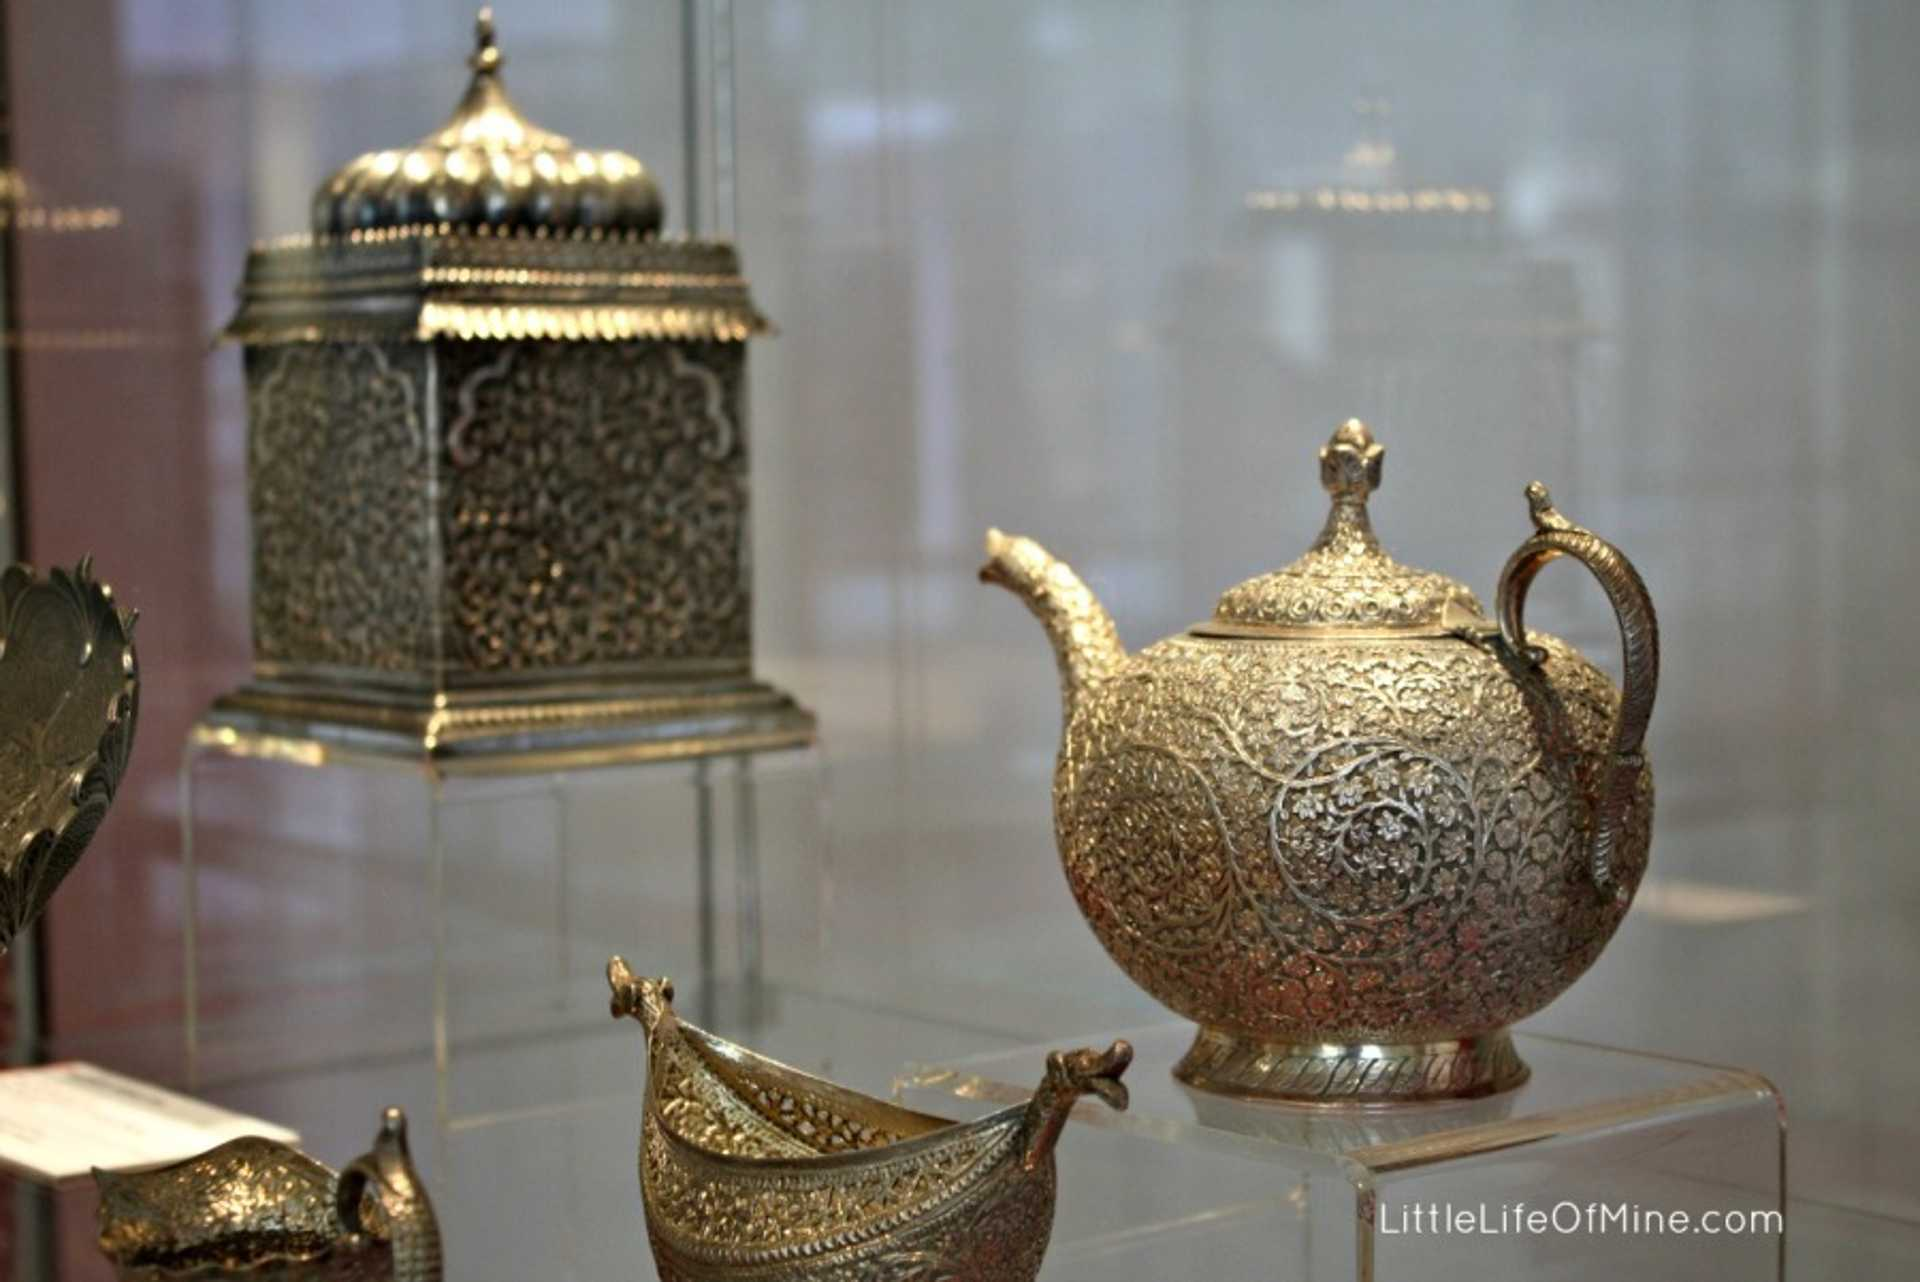 The age-old artefacts at the Islamic Arts Museum